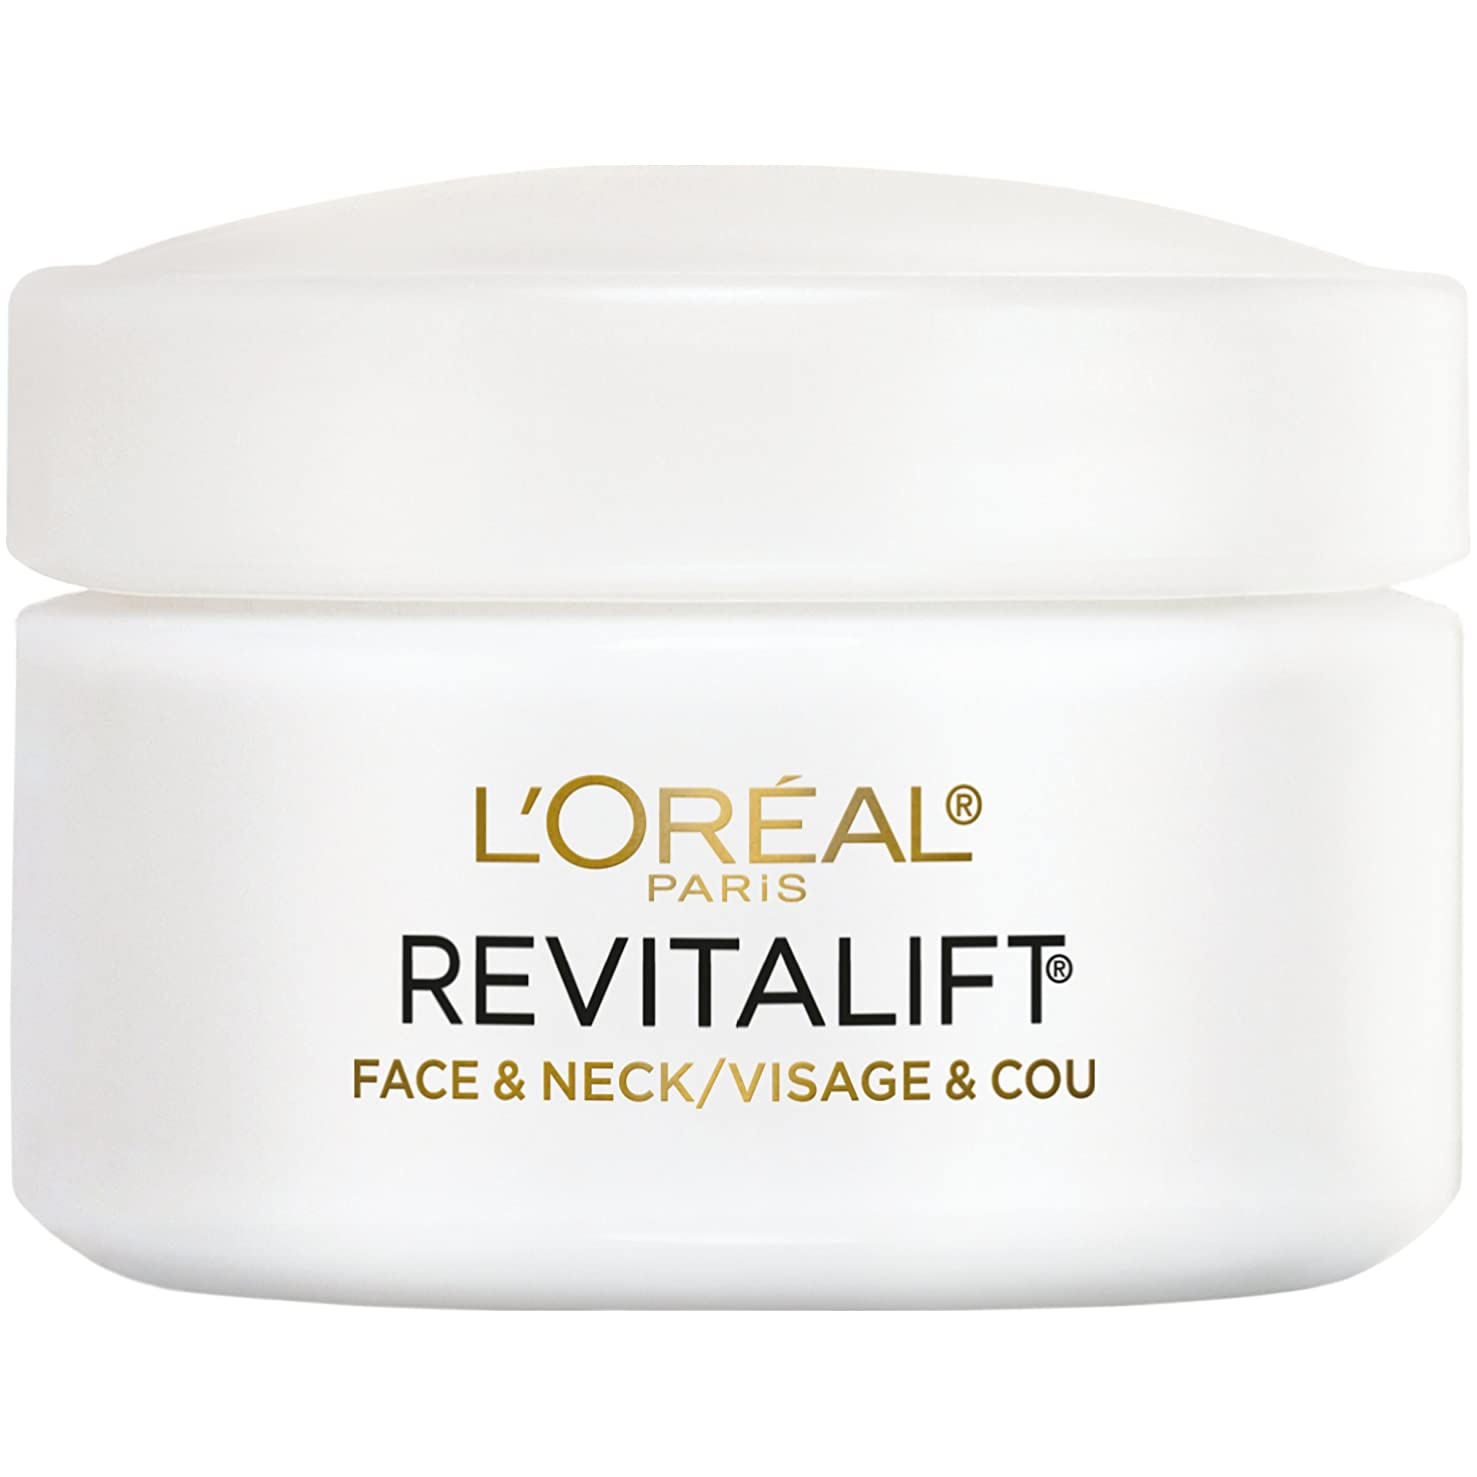 言及する蒸留出席するL'Oreal Paris Advanced RevitaLift Face and Neck Day Cream, 1.7 Ounce (並行輸入品)